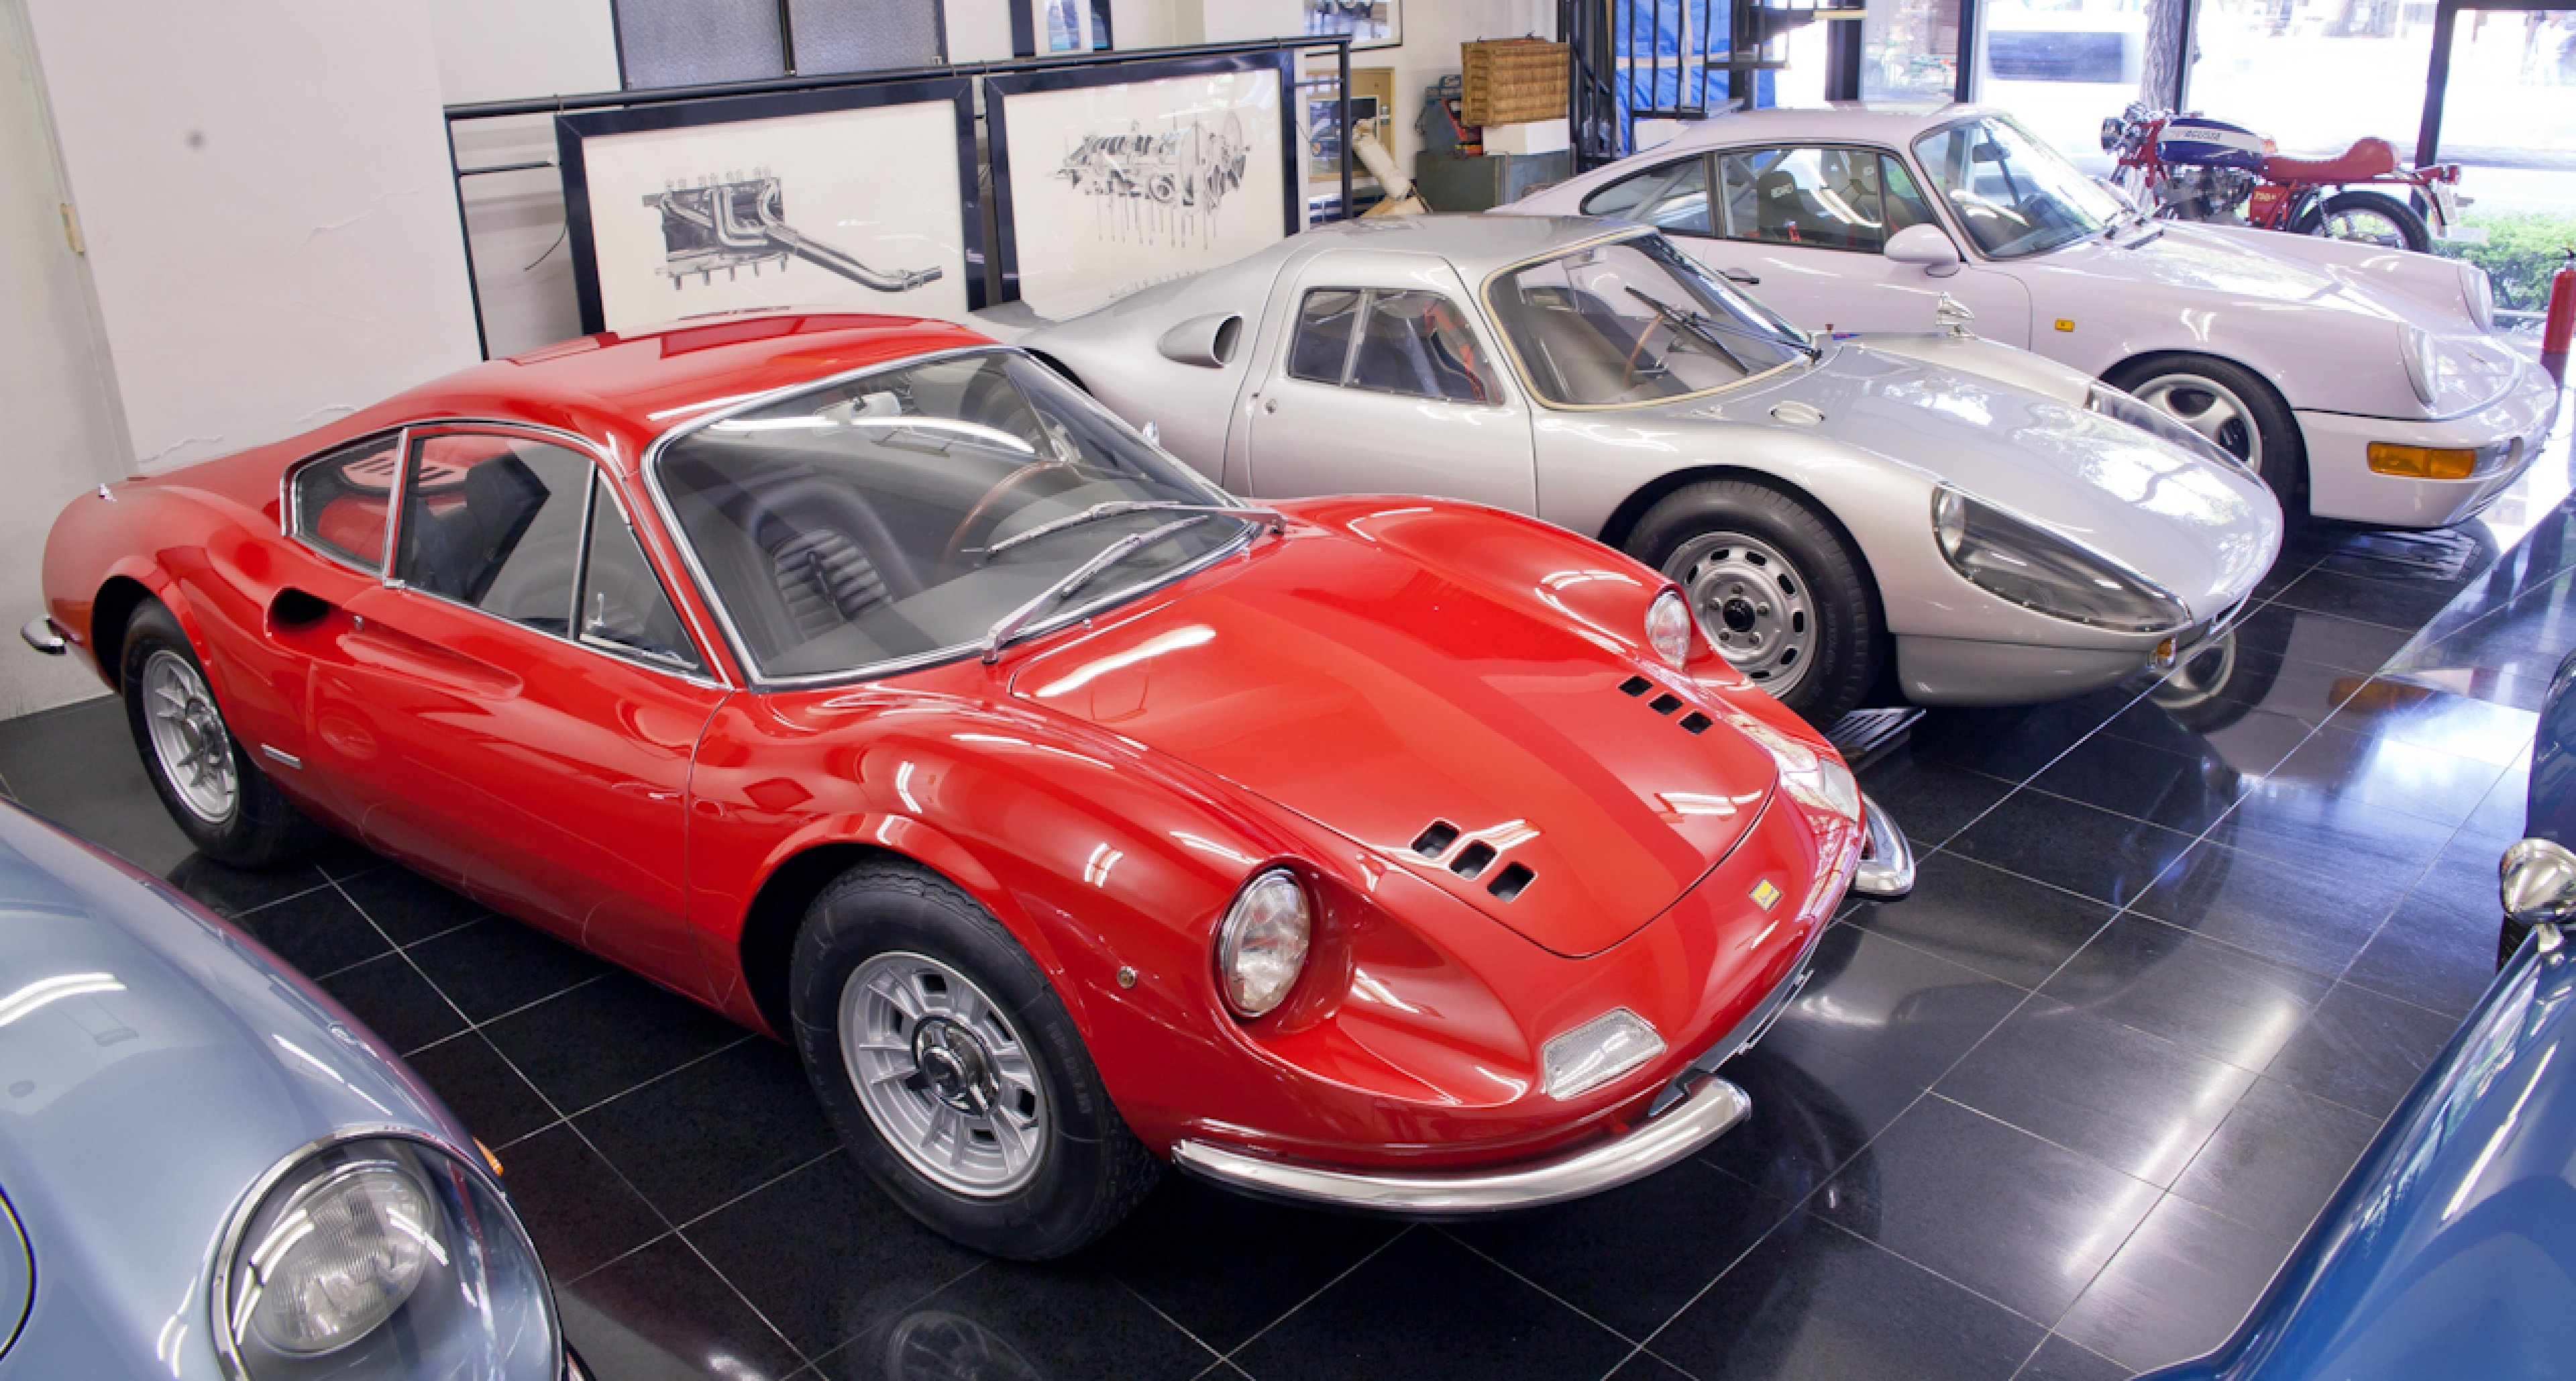 Ferrari Dino 206 – highly original (even the paintwork), only the interior has been restored. Naito-san says the Dino's handling is not that good, but the sound more than makes up for it.